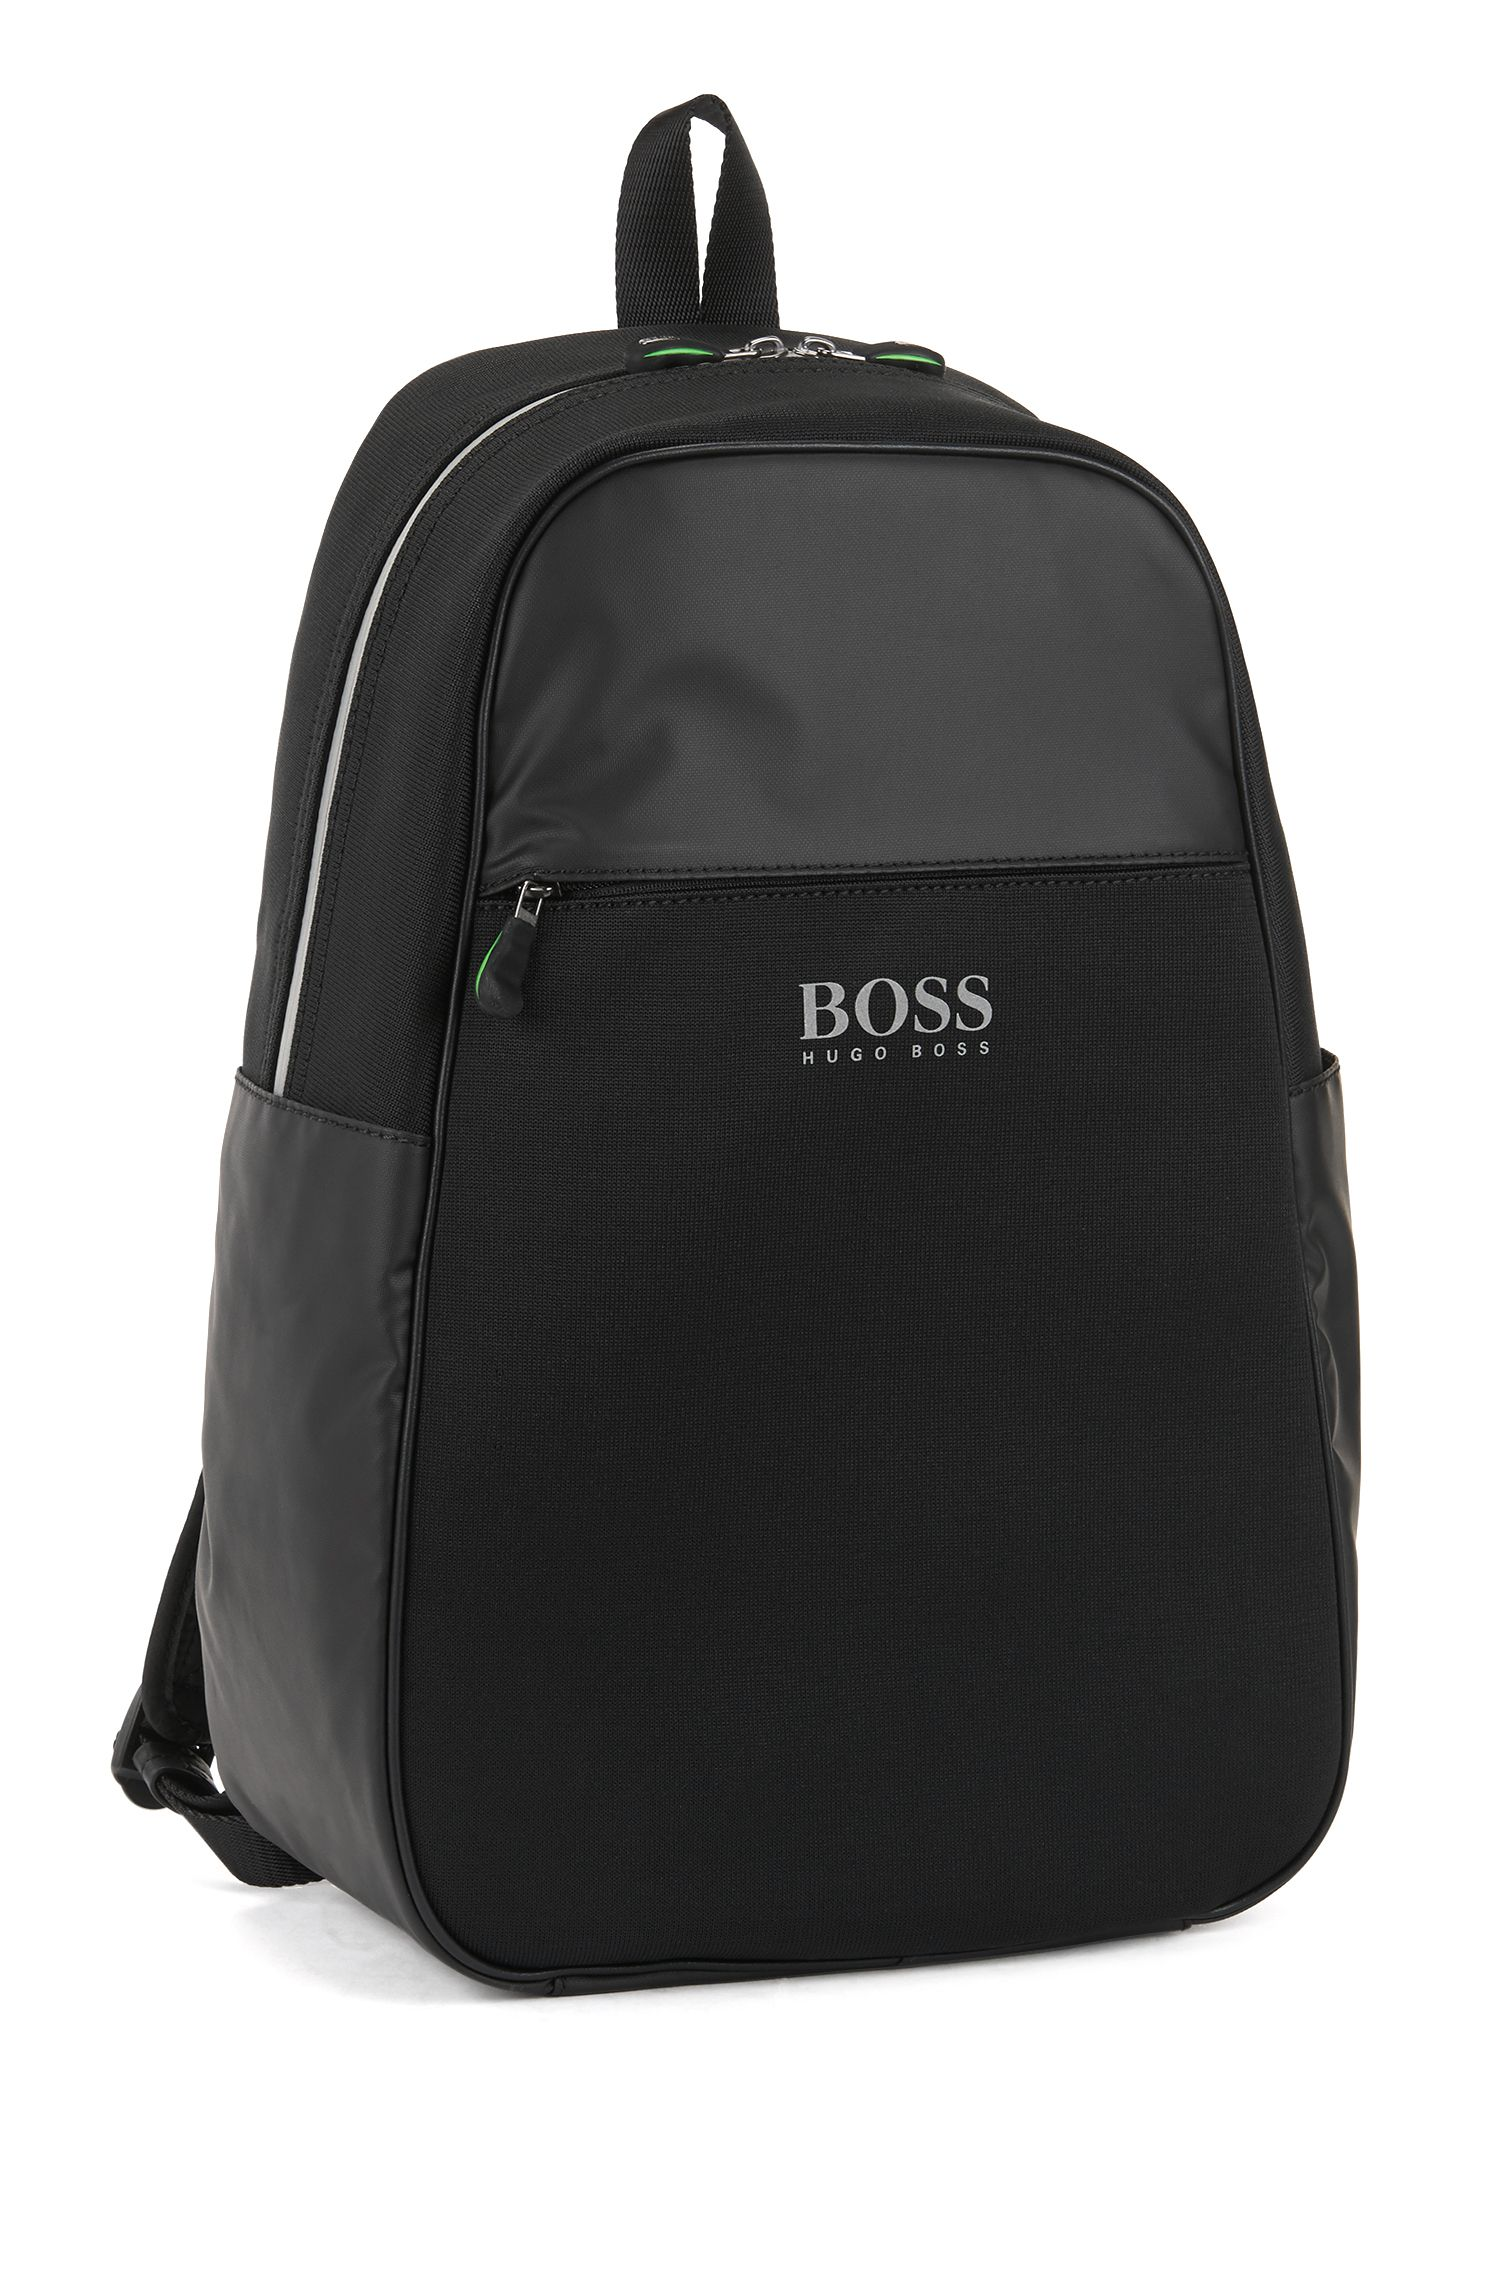 Backpack with headphone port and laptop compartment